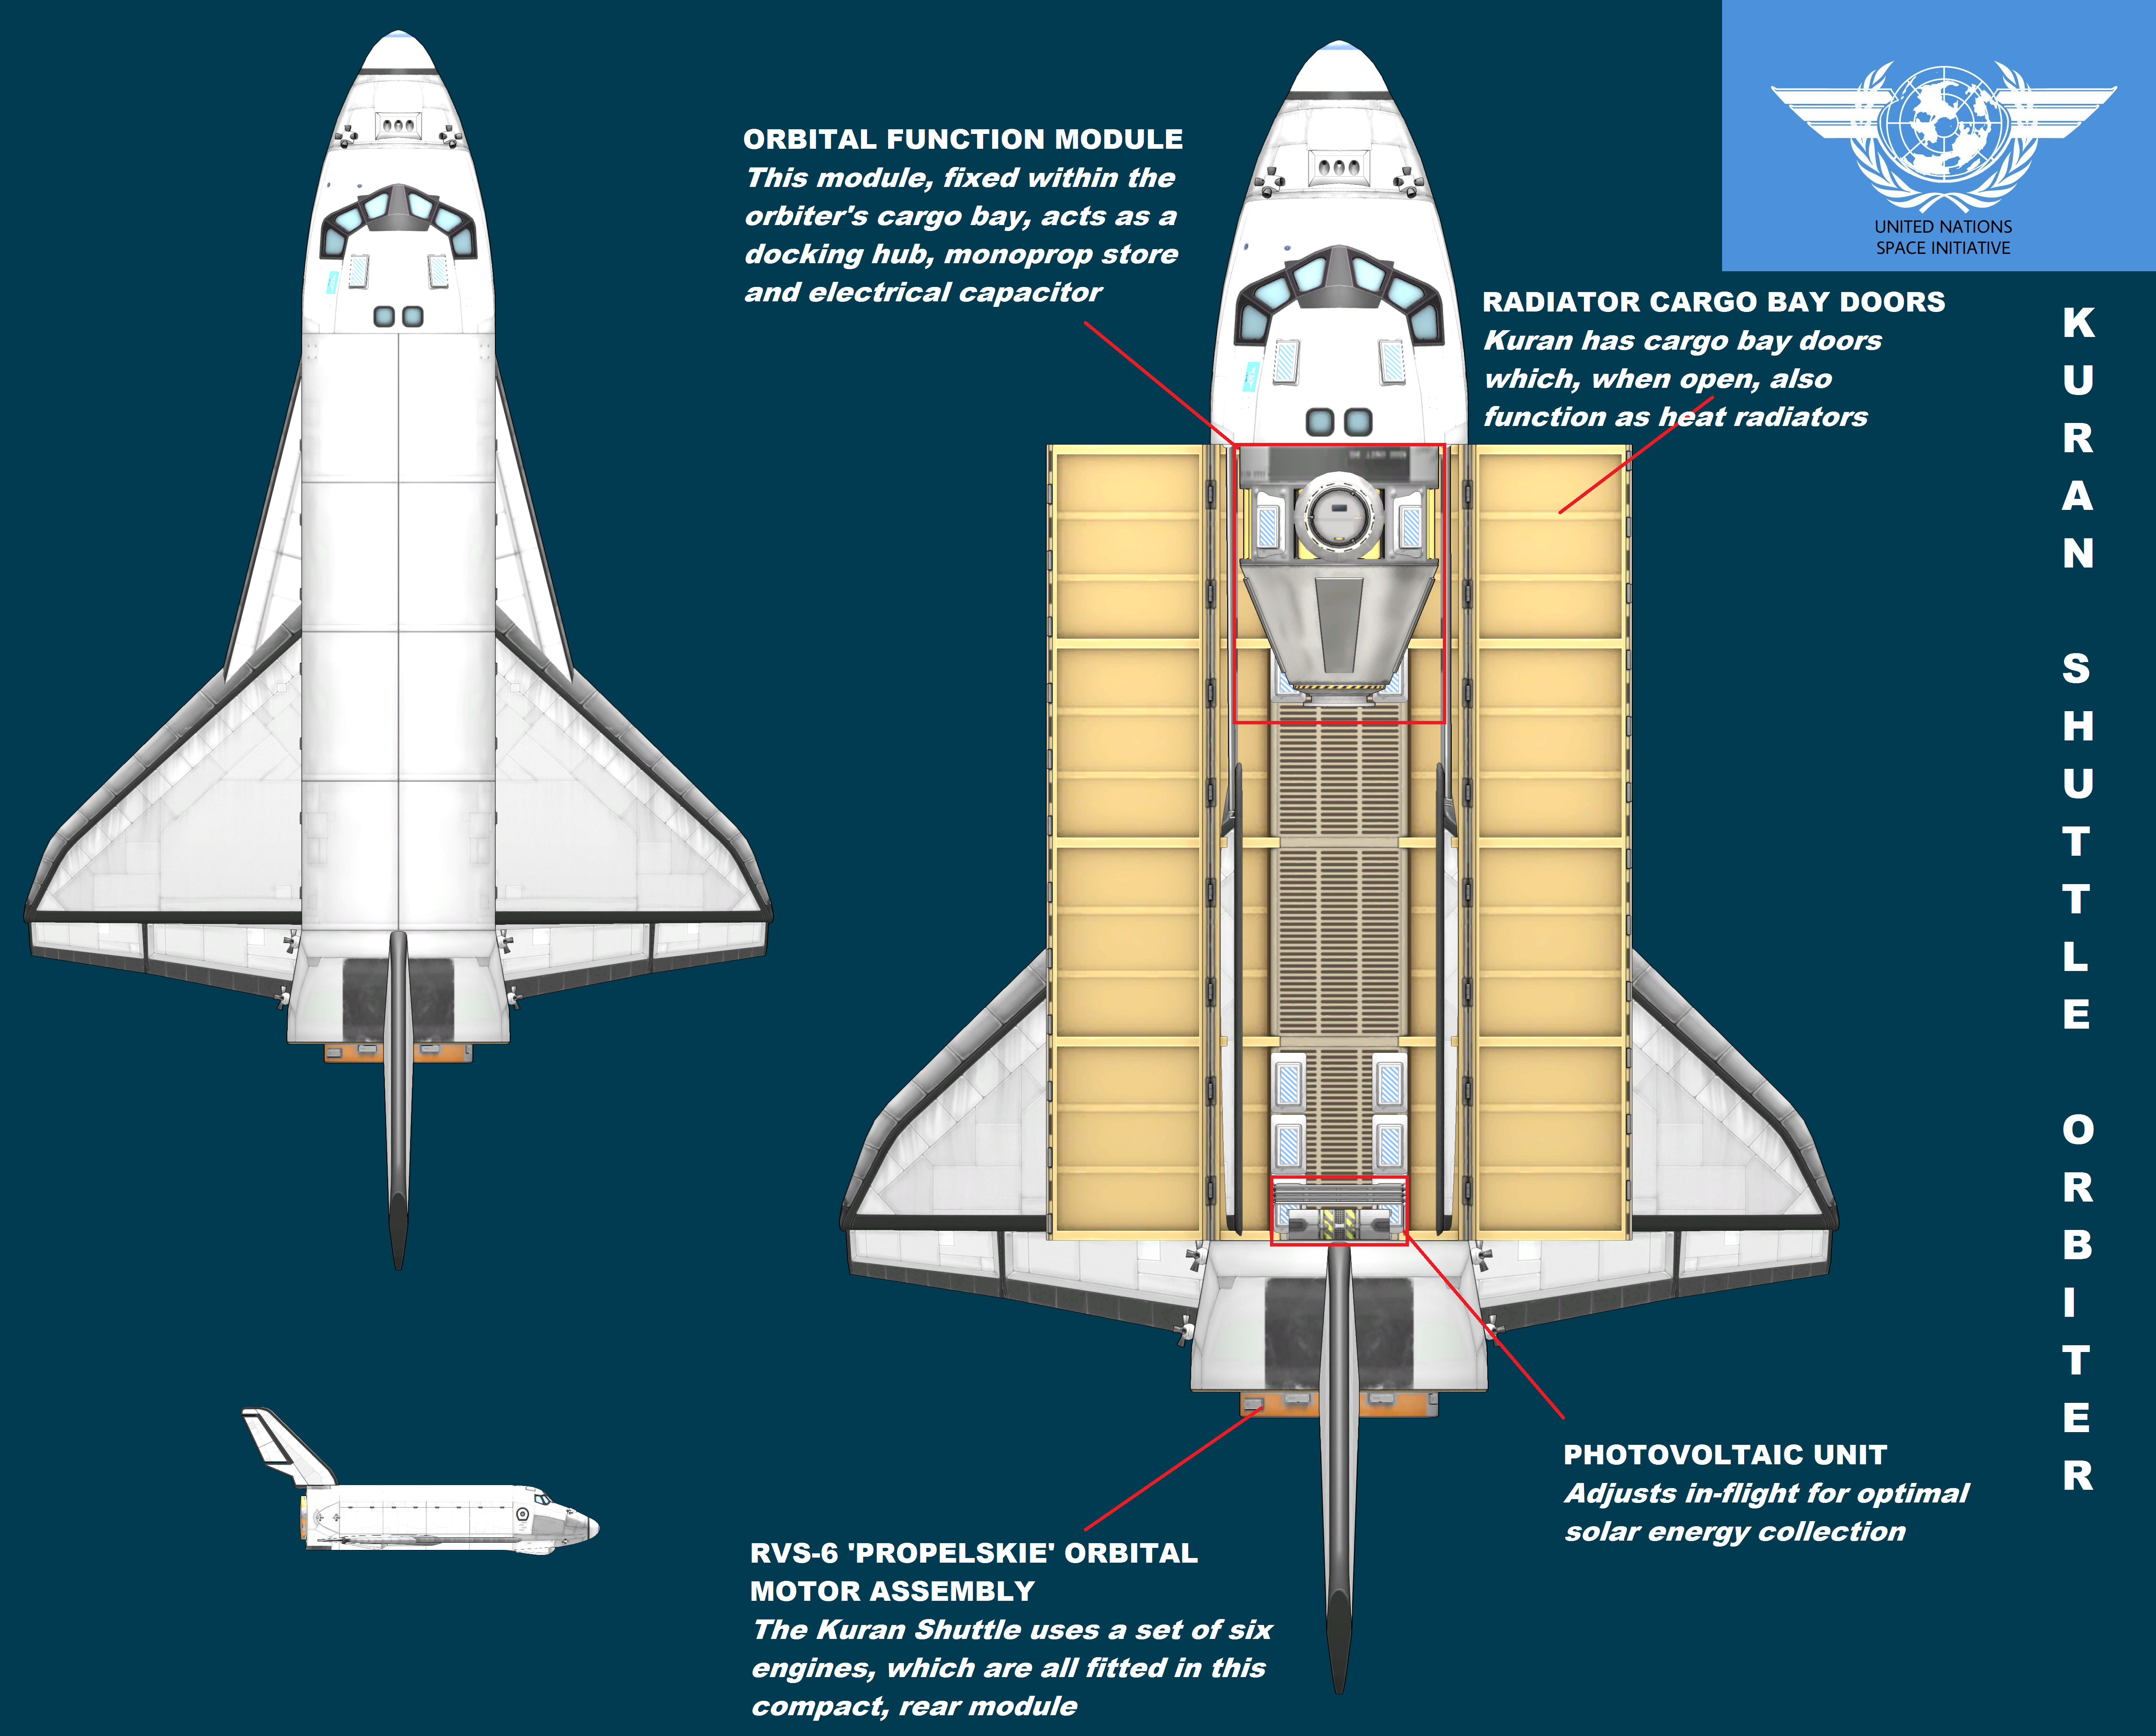 ksp space shuttle craft - photo #44